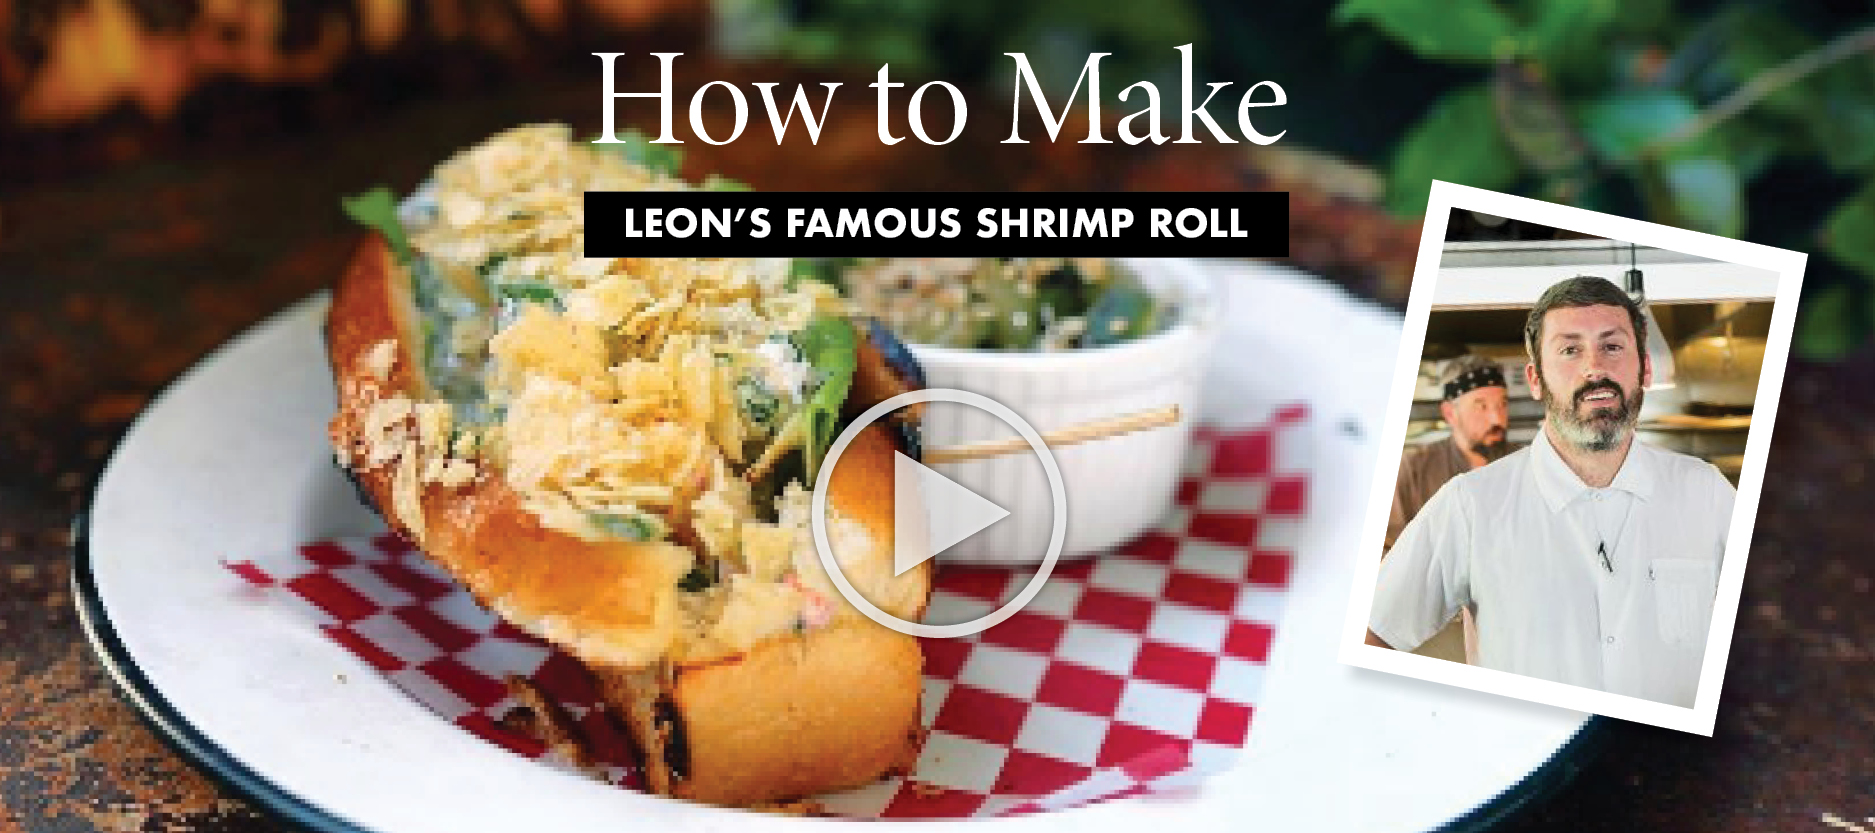 How to Make Leon's Famous Shrimp Roll